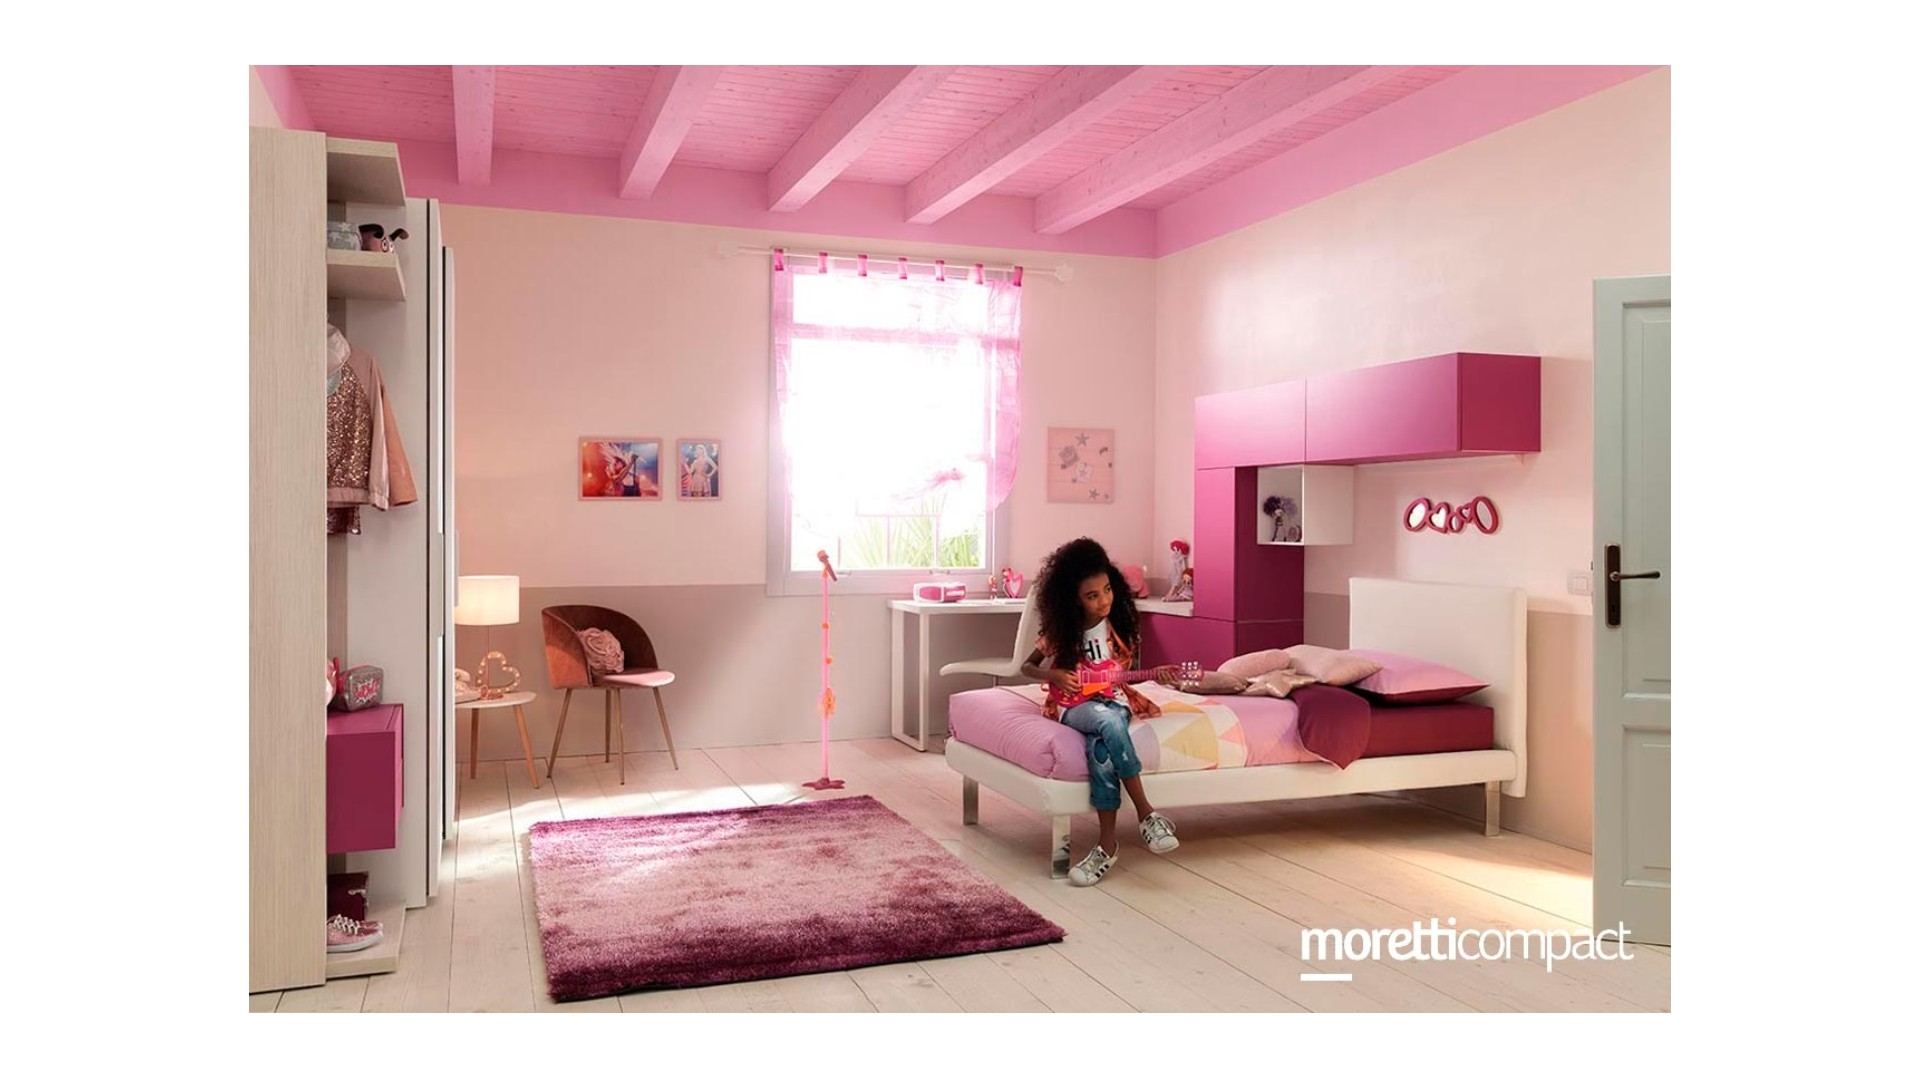 Chambre fille et ado girly chic - MORETTI COMPACT - SONUIT